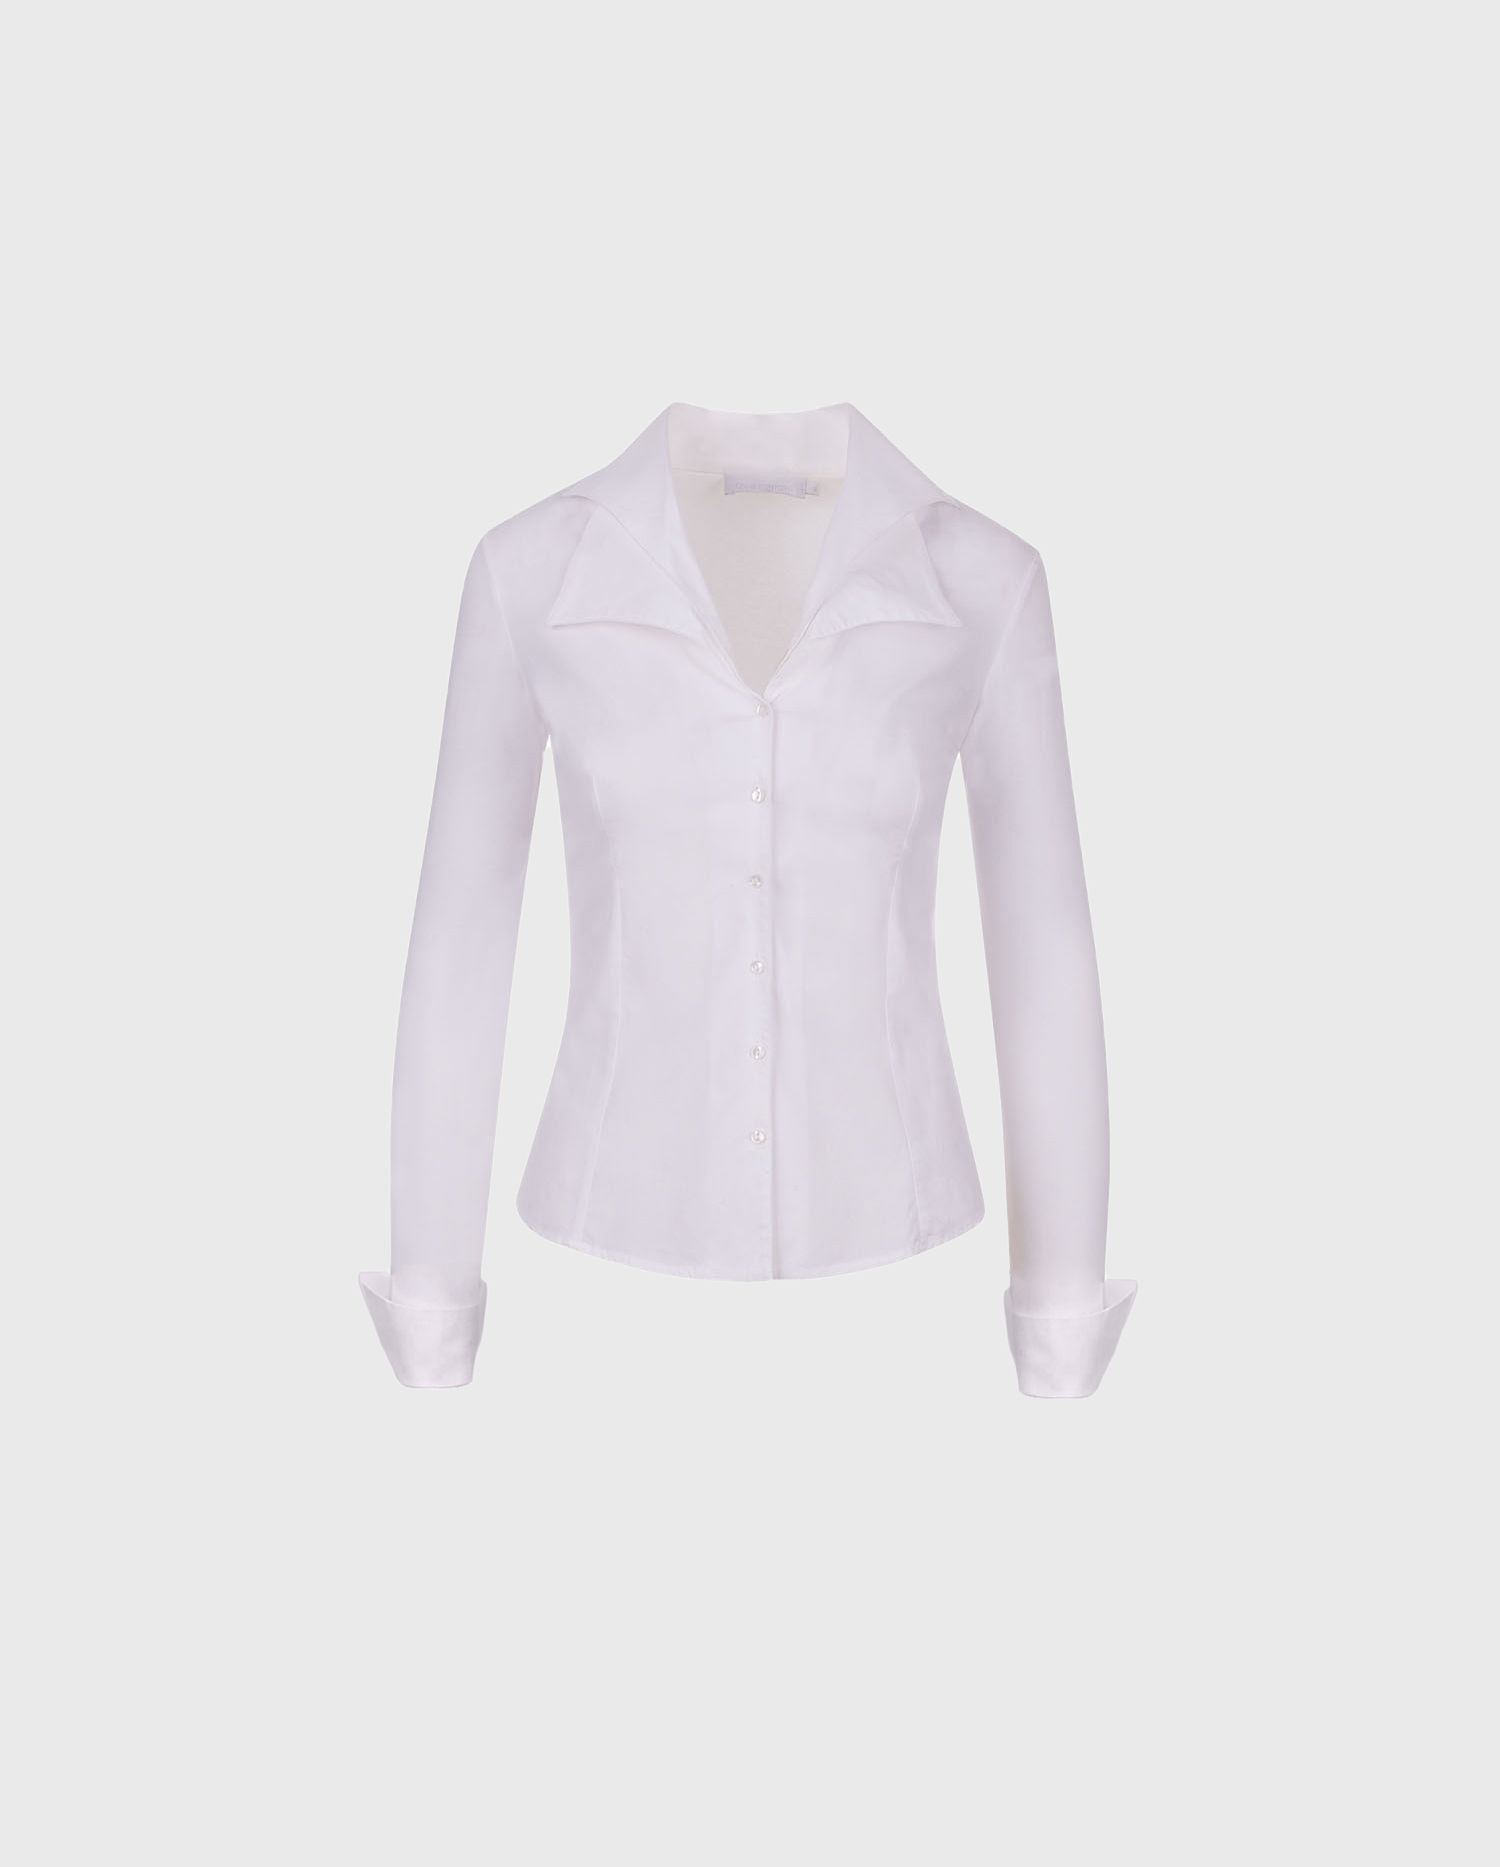 Add the crisp white CHRISTIE shirt to your Fall wardrobe for a simple - yet chic upgrade to your wardrobe.